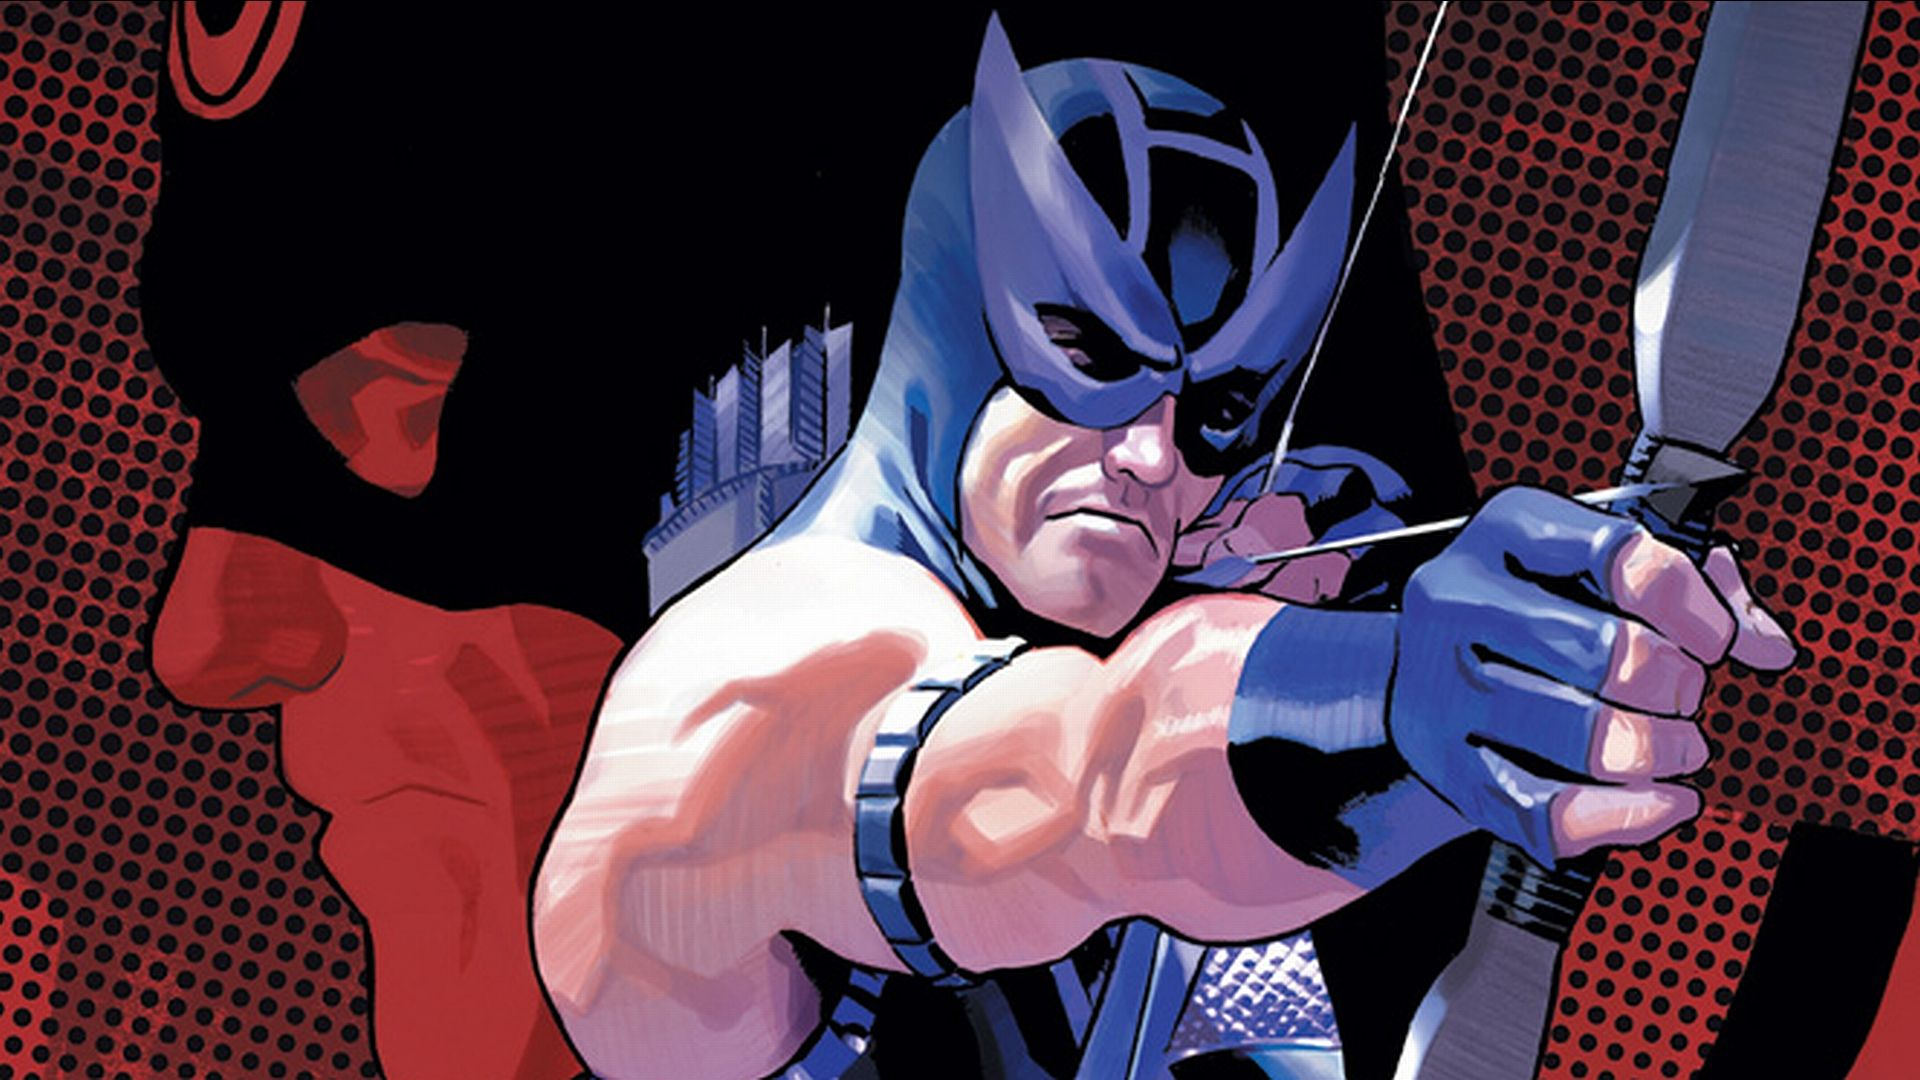 Bullseye Marvel Comics Hawkeye Bullseye Marvel Comicshawkeye Full 1920x1080